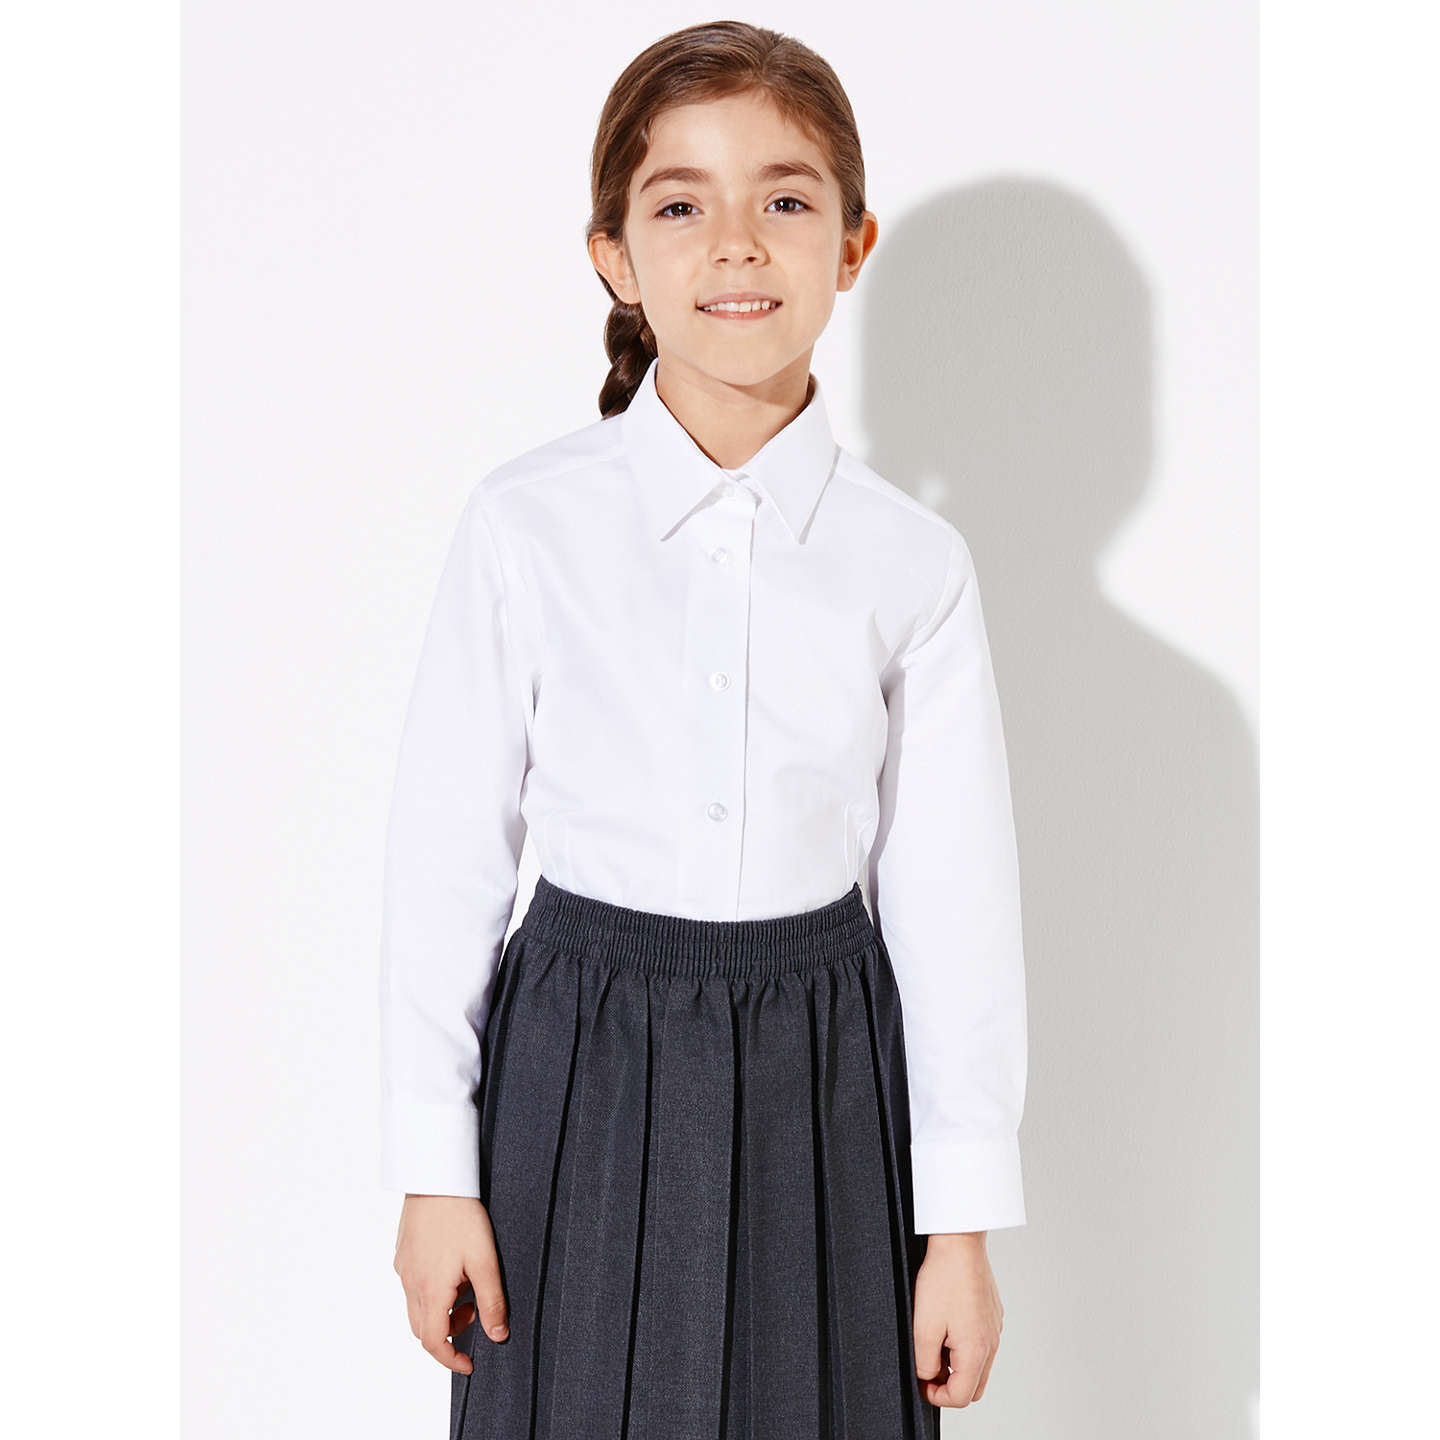 BuyJohn Lewis Girls' Long Sleeve Fitted Pure Cotton School Blouse, White, 4 years Online at johnlewis.com